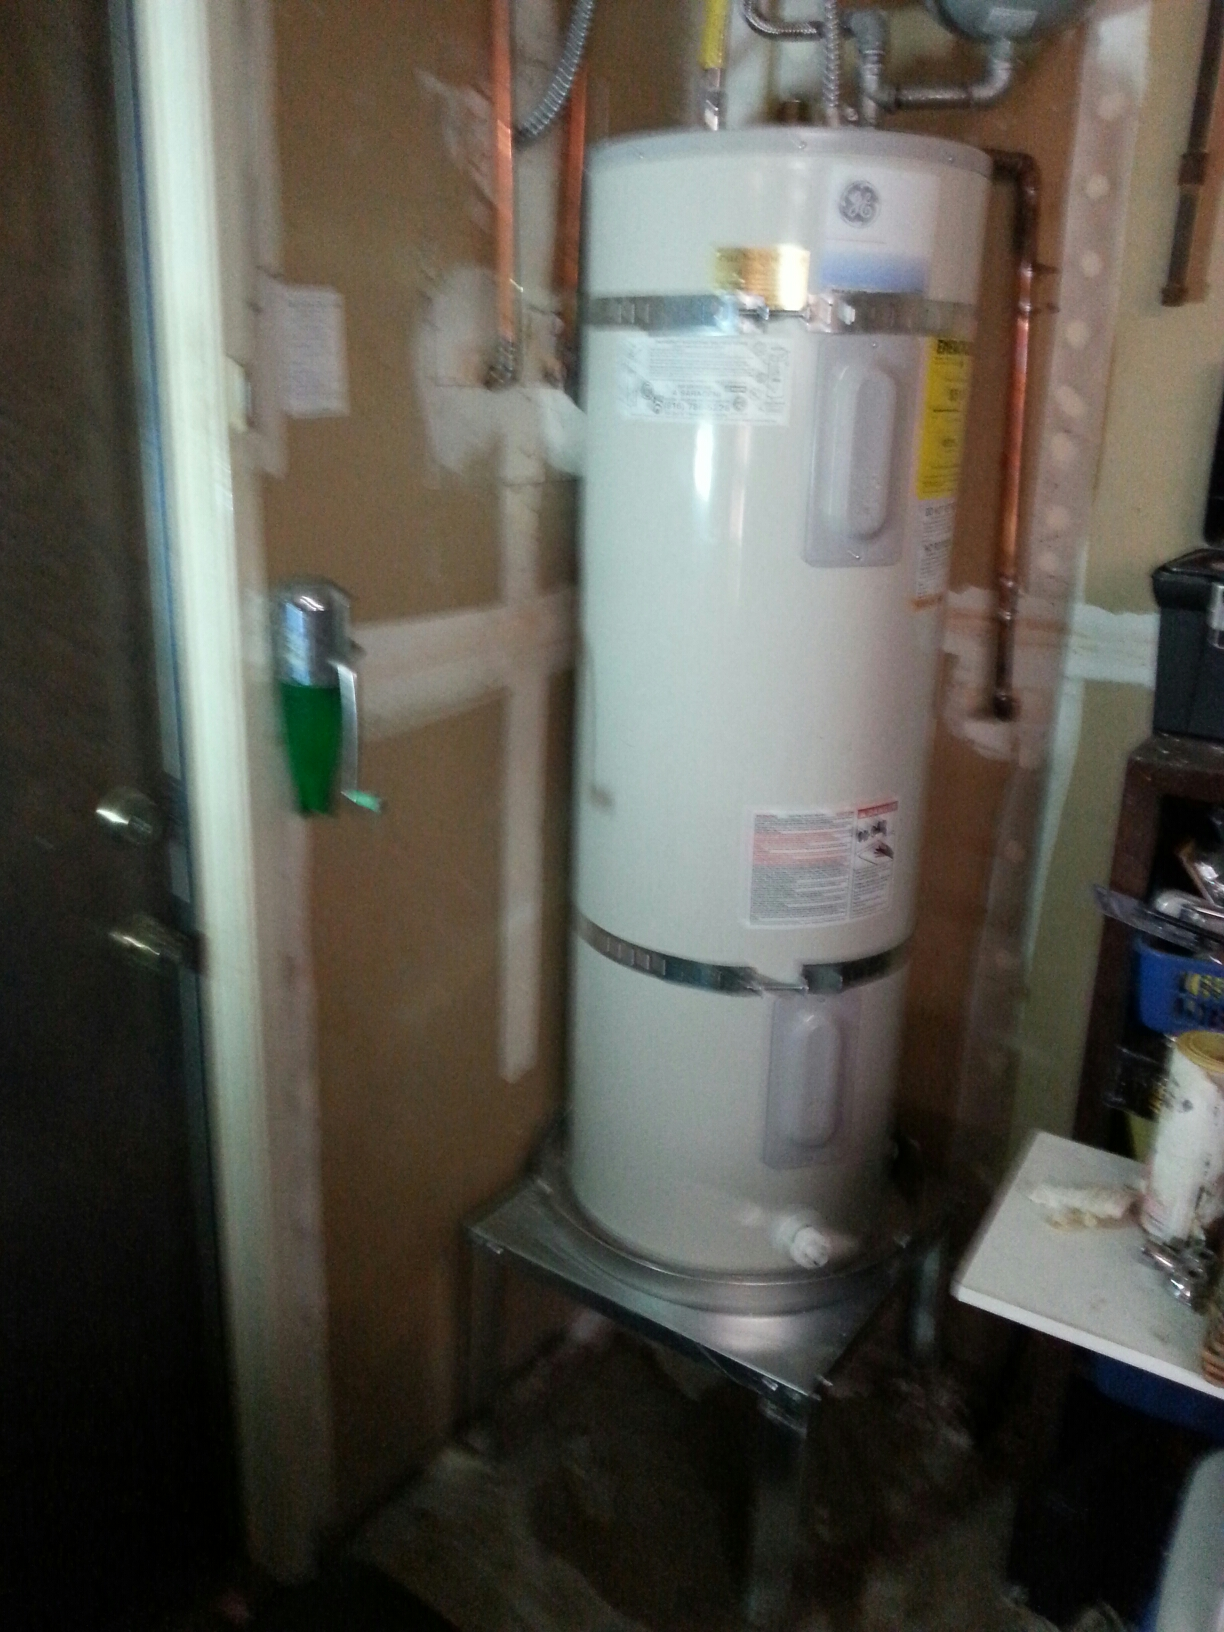 Roseville, CA - Roseville water heater new stand and water pan. Plumbed water heater up to code.